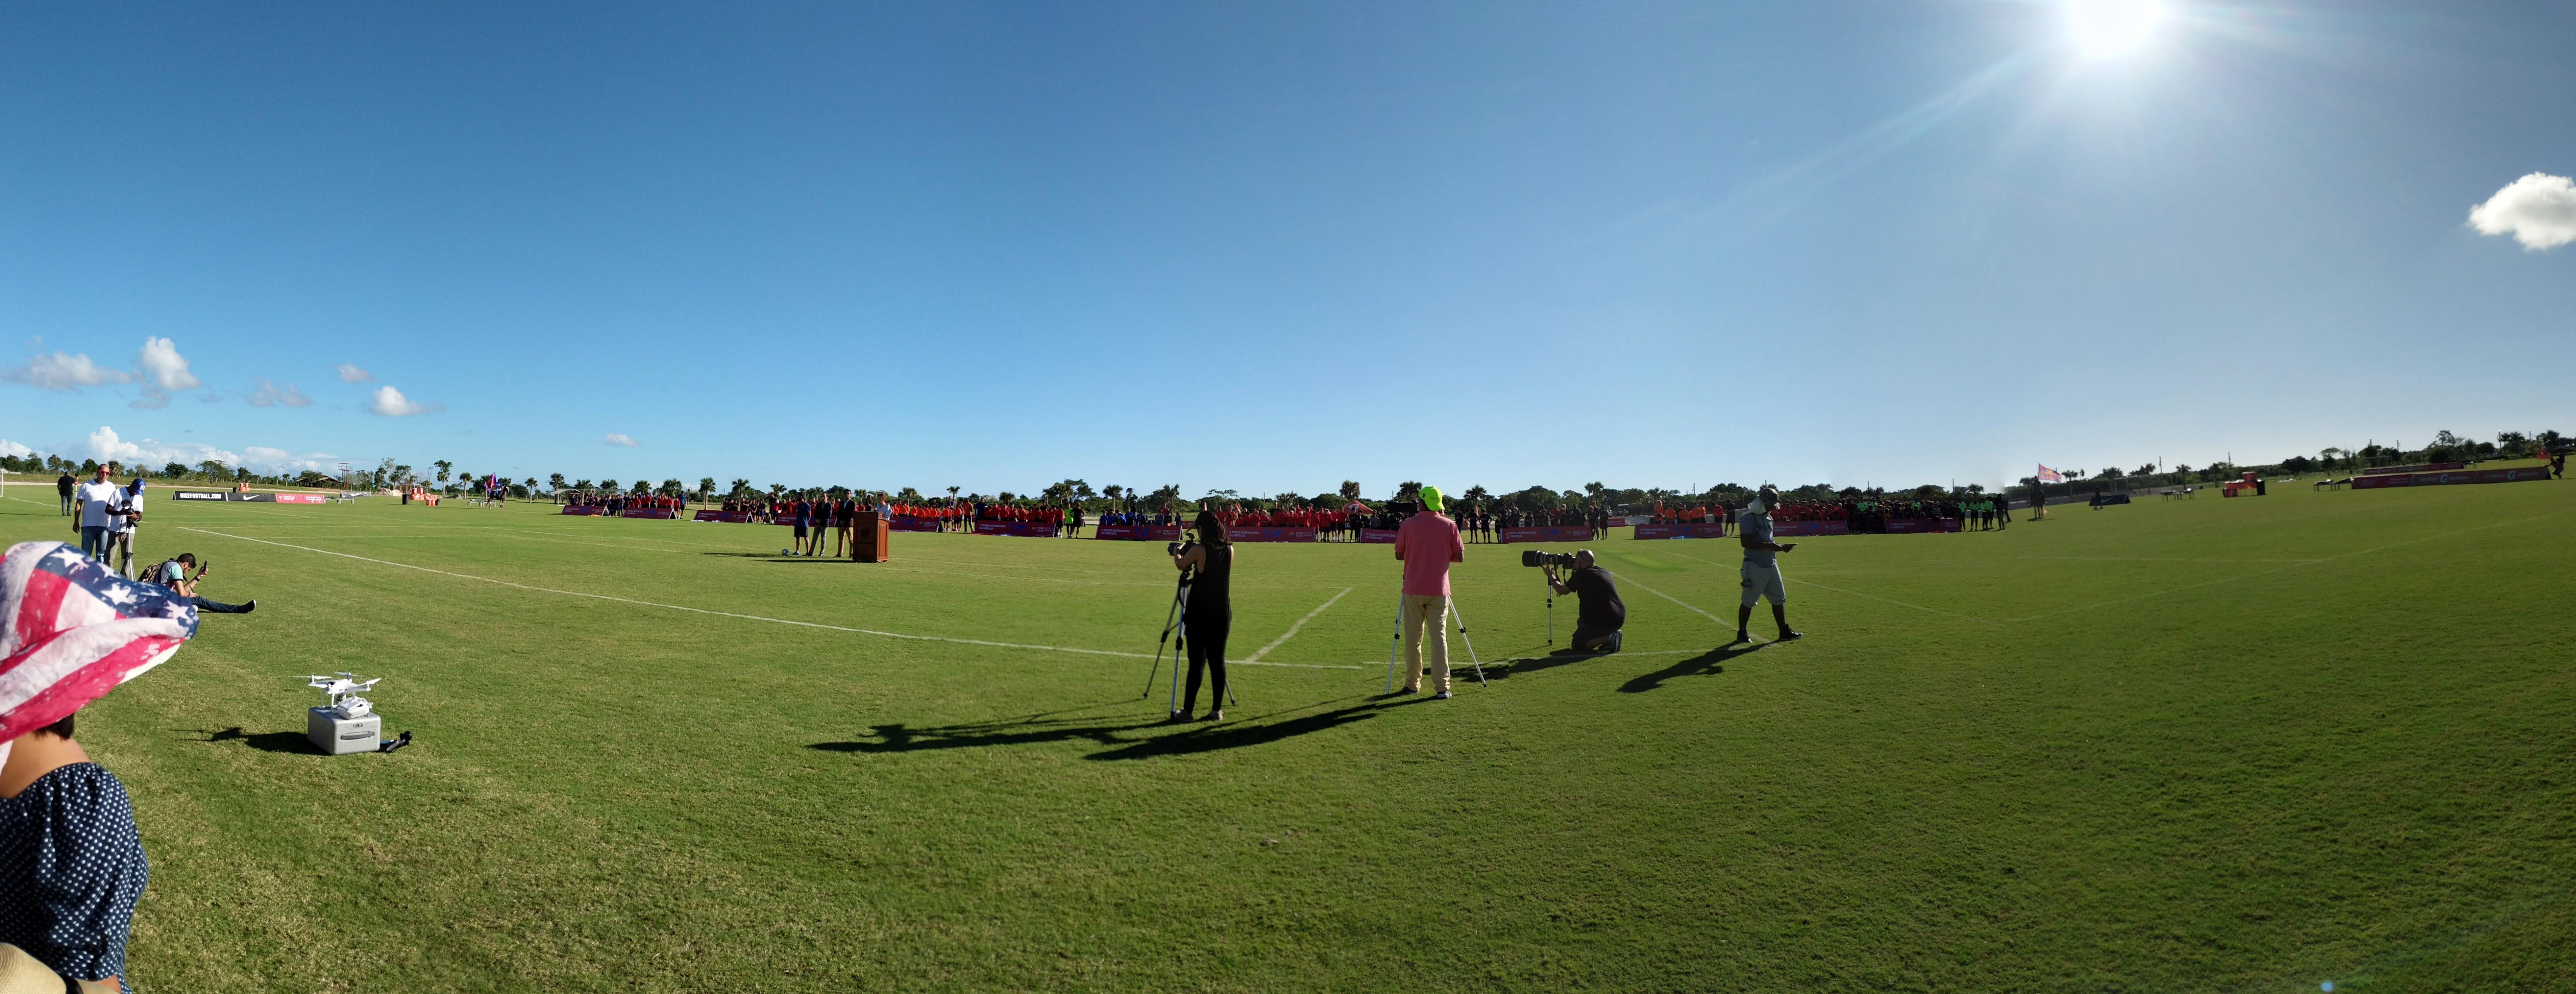 Beautiful View of the Tournament Field